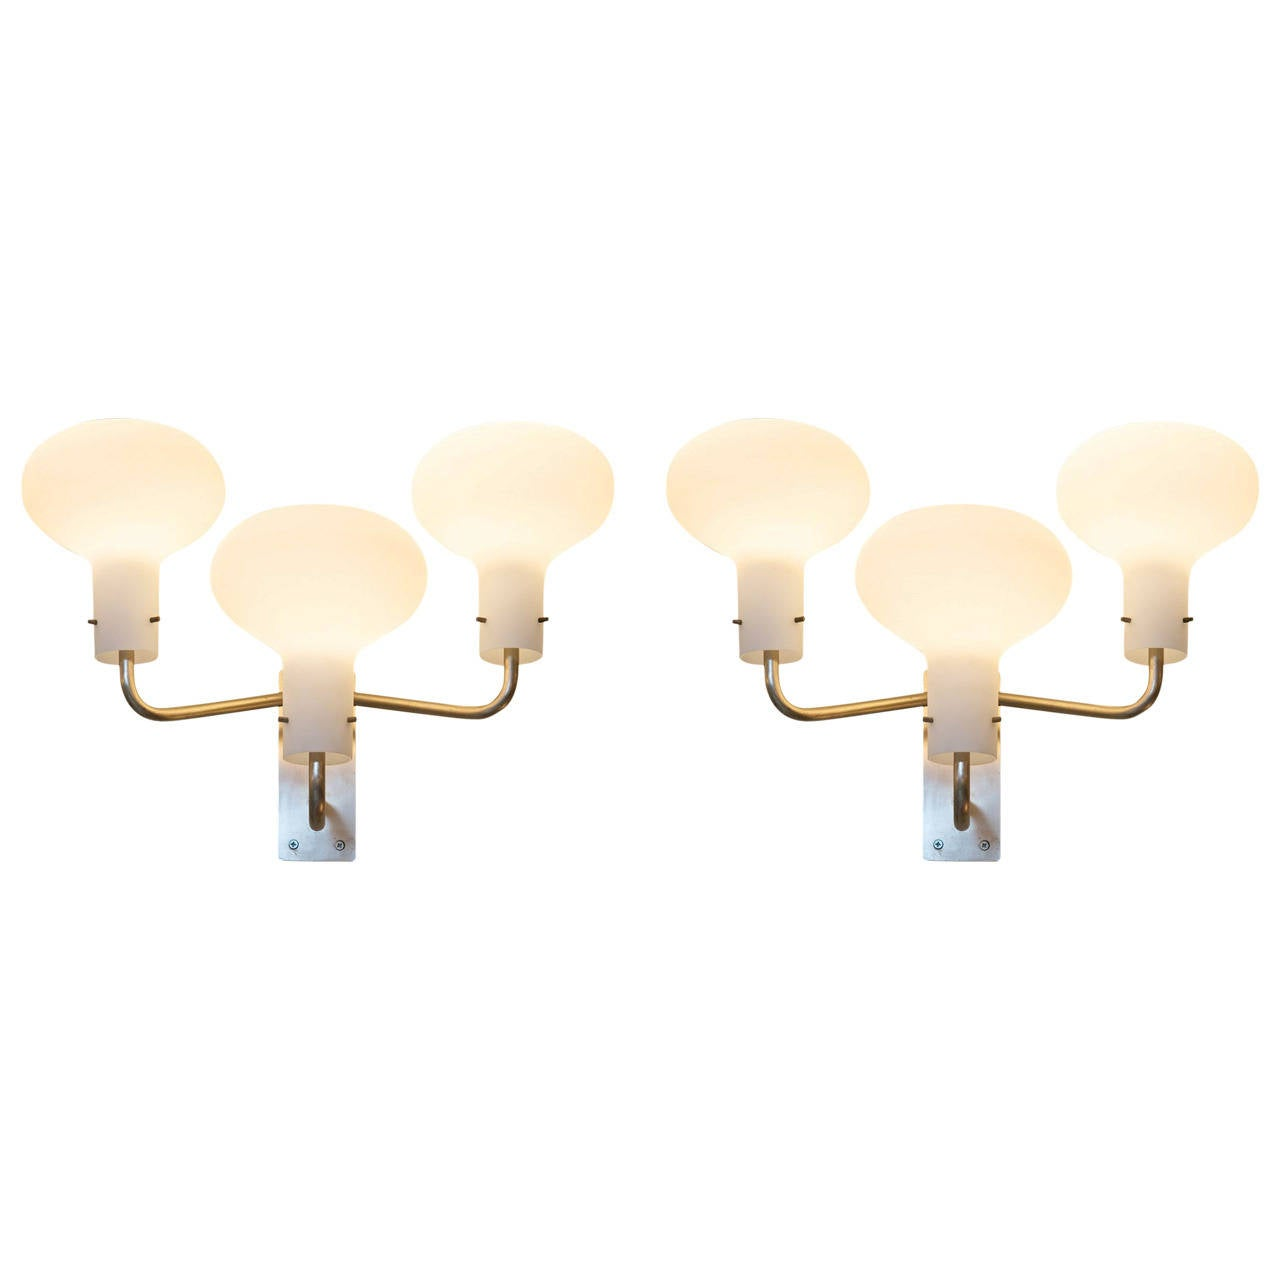 Ignazio Gardella Pair of Large Sconces for Azucena For Sale